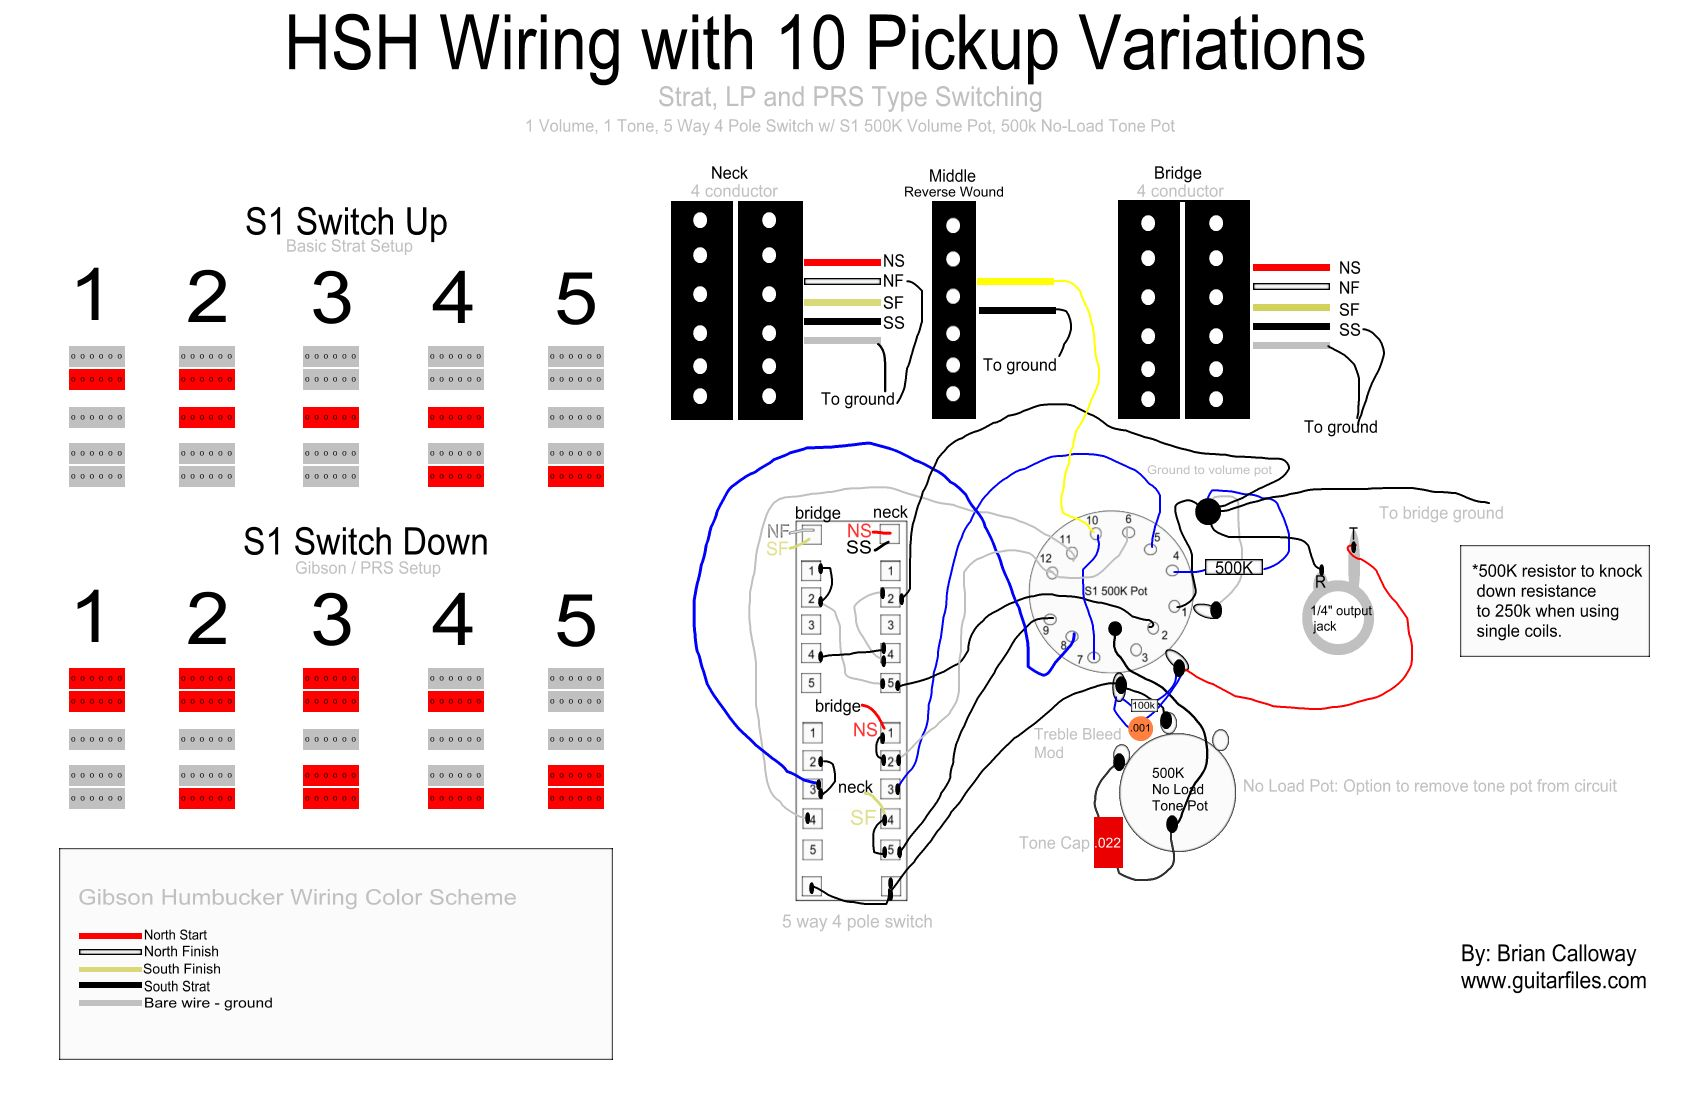 Hsh Wiring Diagram Free For You Together With Active Pickup 1 Also Push Guitar 10 Combinations 4 Pole Switch Pulls 5 Way Volume Tone